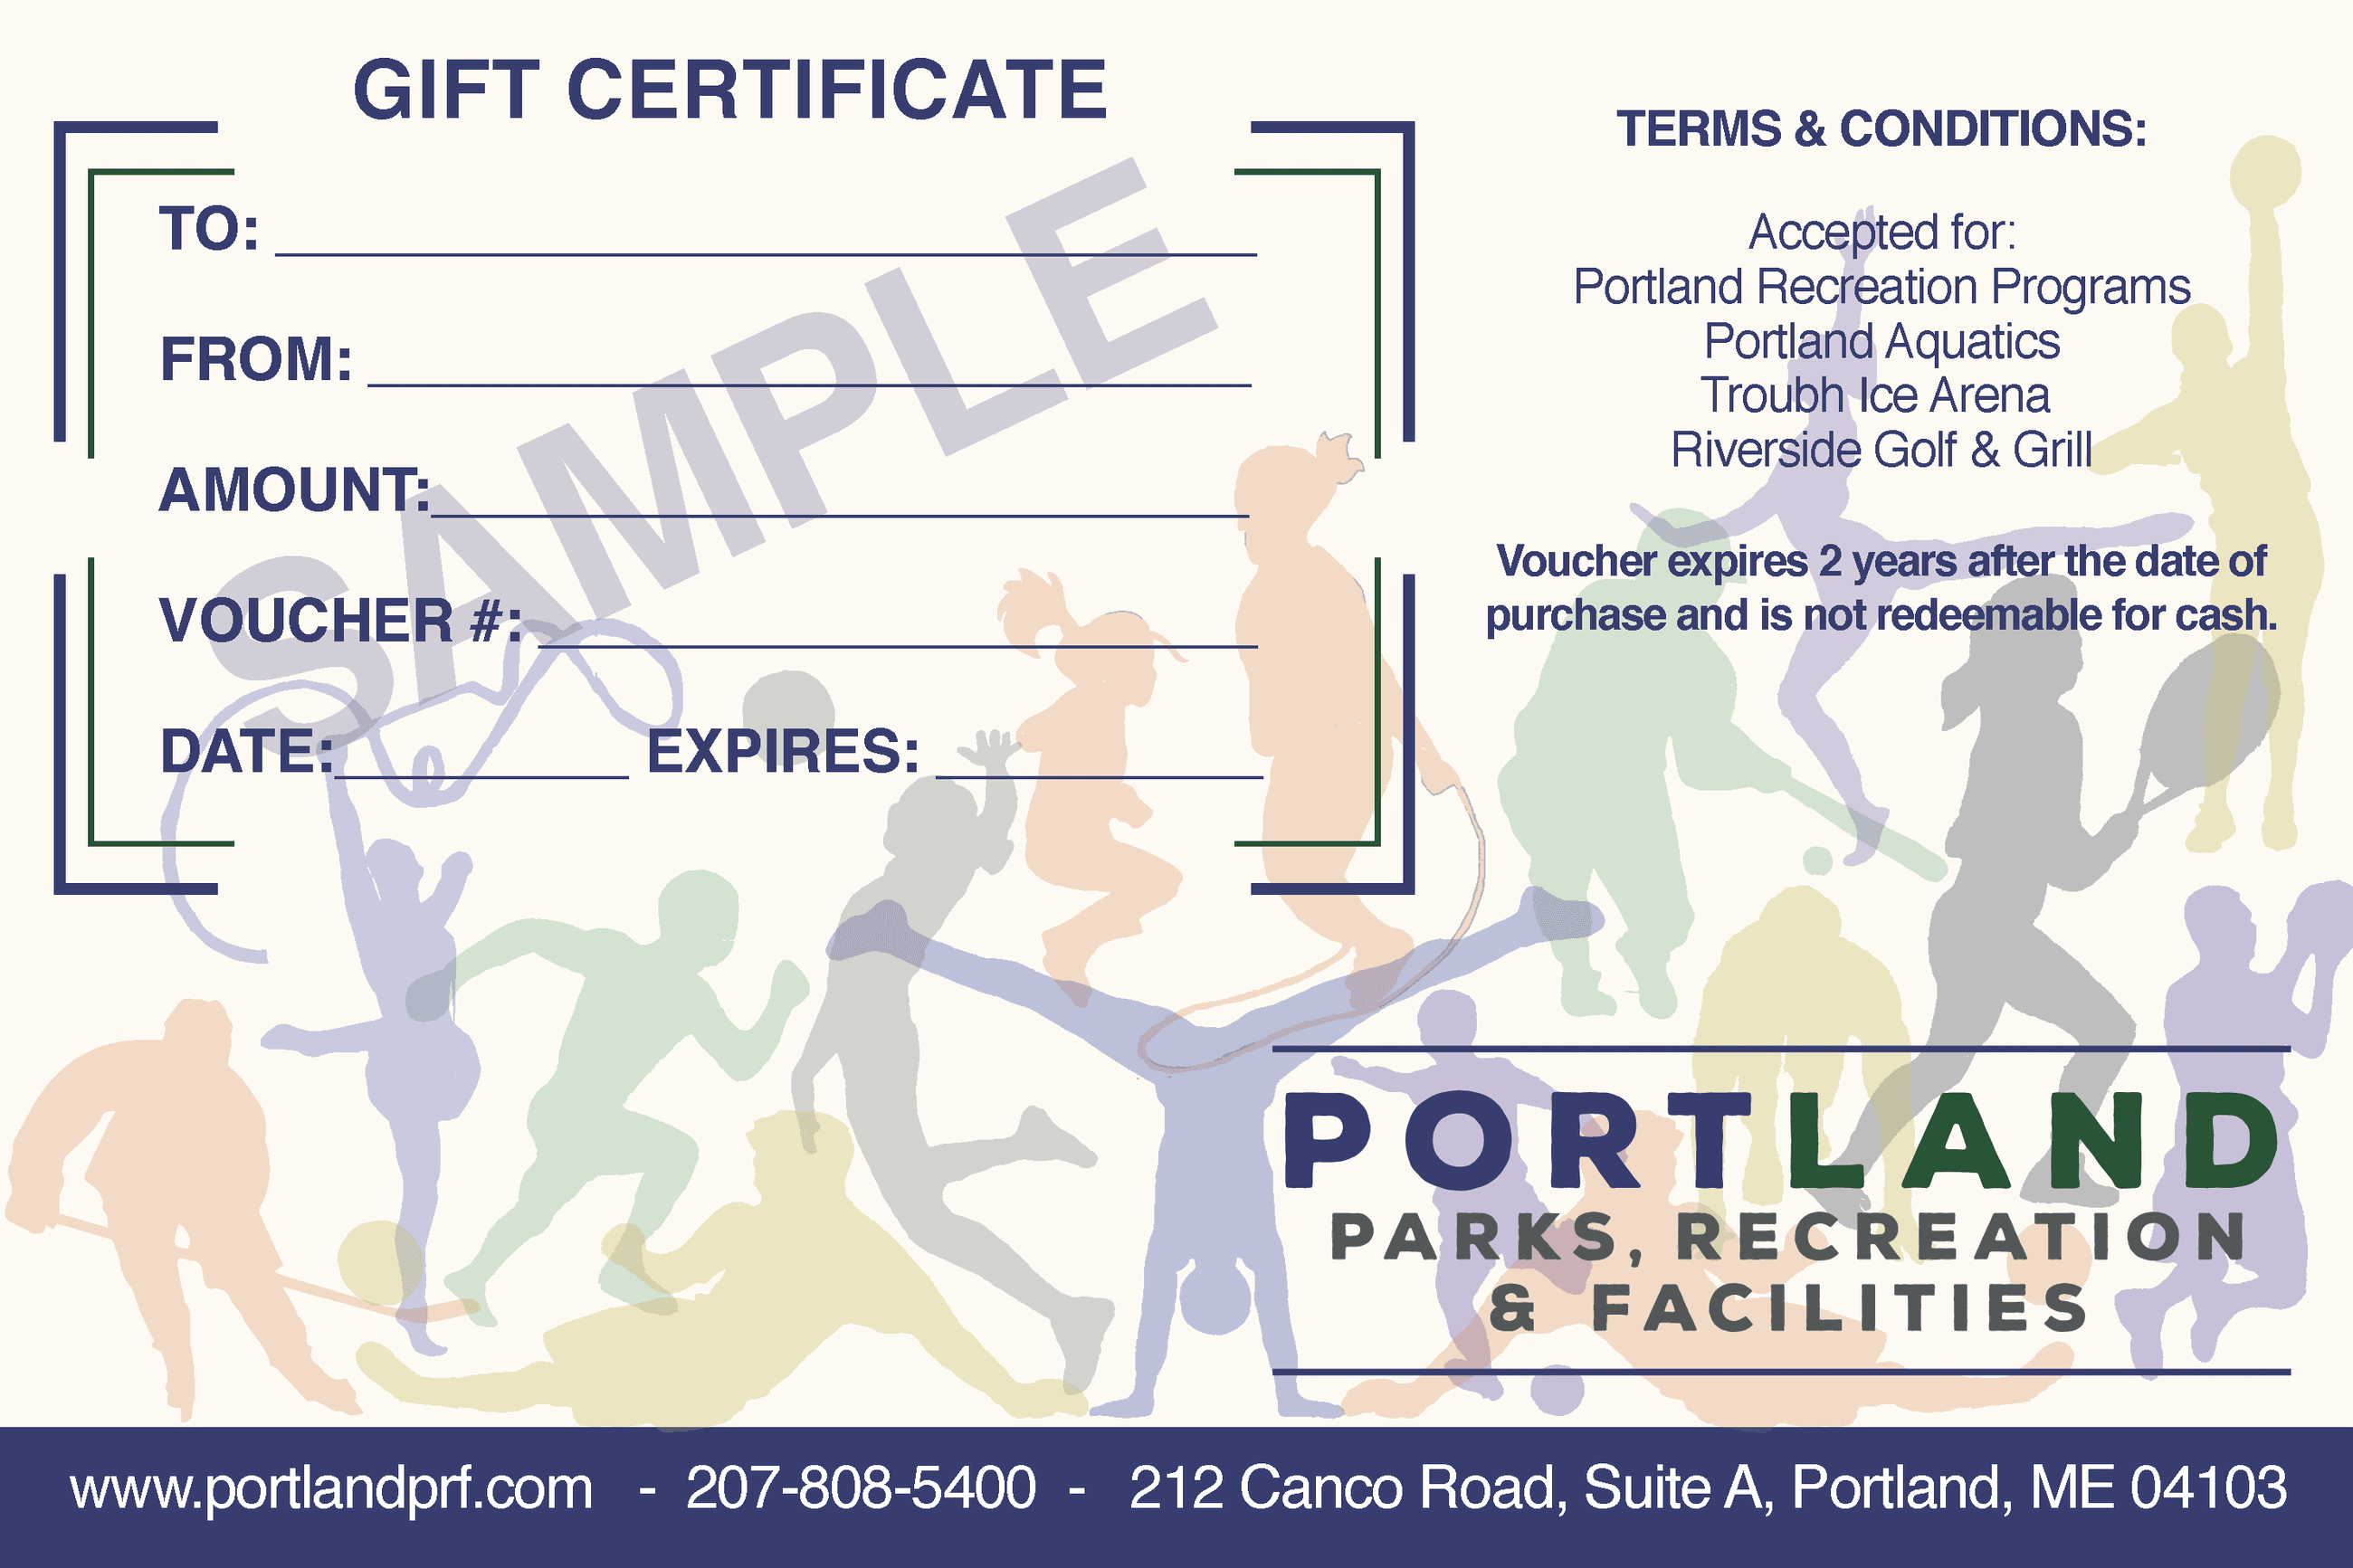 City of Portland Parks, Recreation & Facilities Gift Certificate, Portland, ME 04103